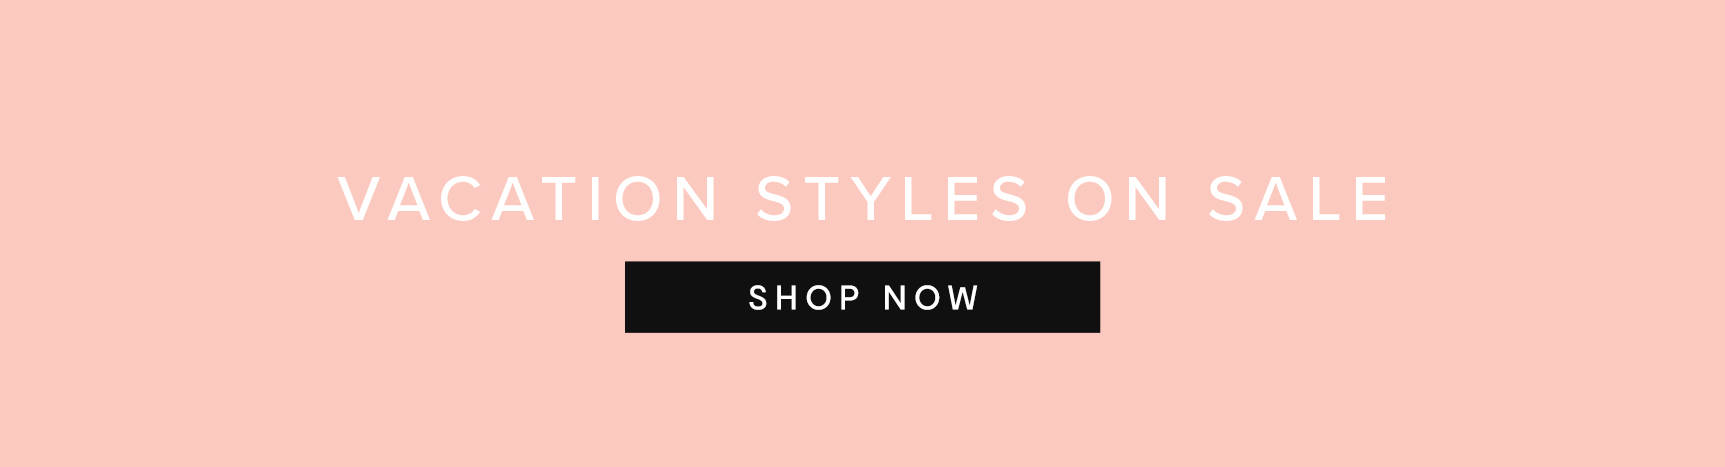 Vacation Styles on Sale